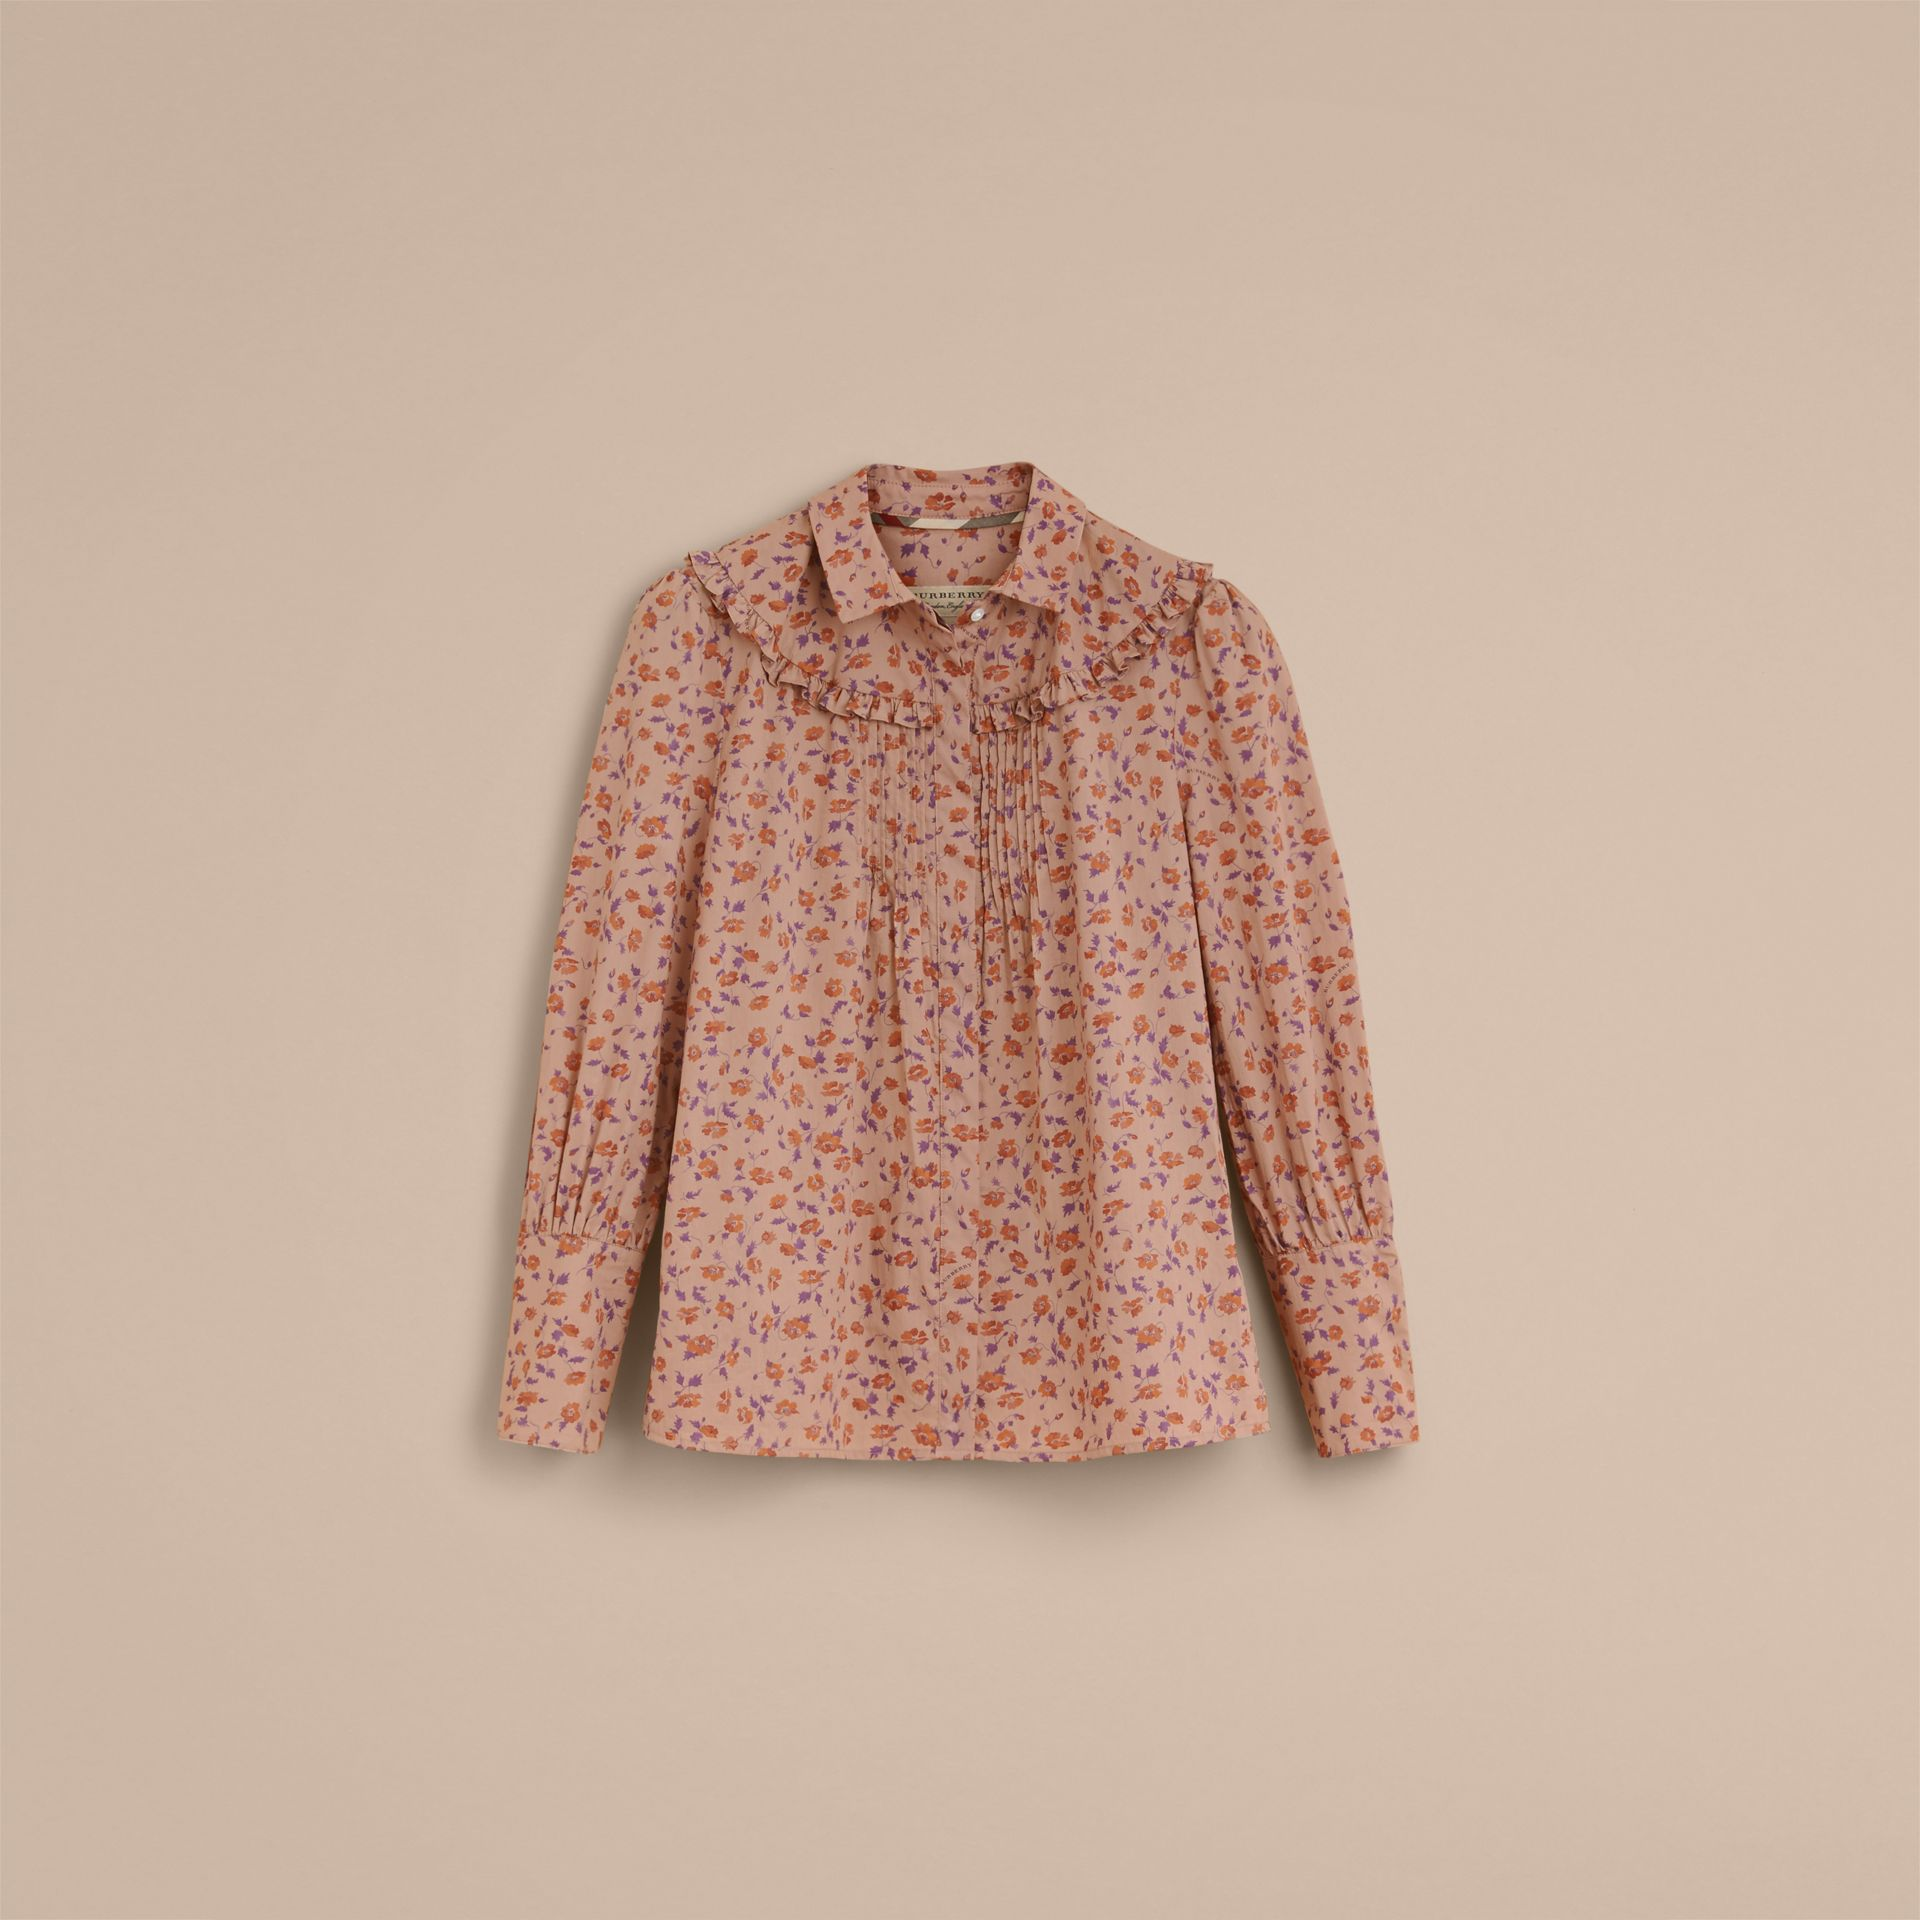 Ruffle Yoke Floral Print Cotton Shirt in Light Copper - Women | Burberry Canada - gallery image 4